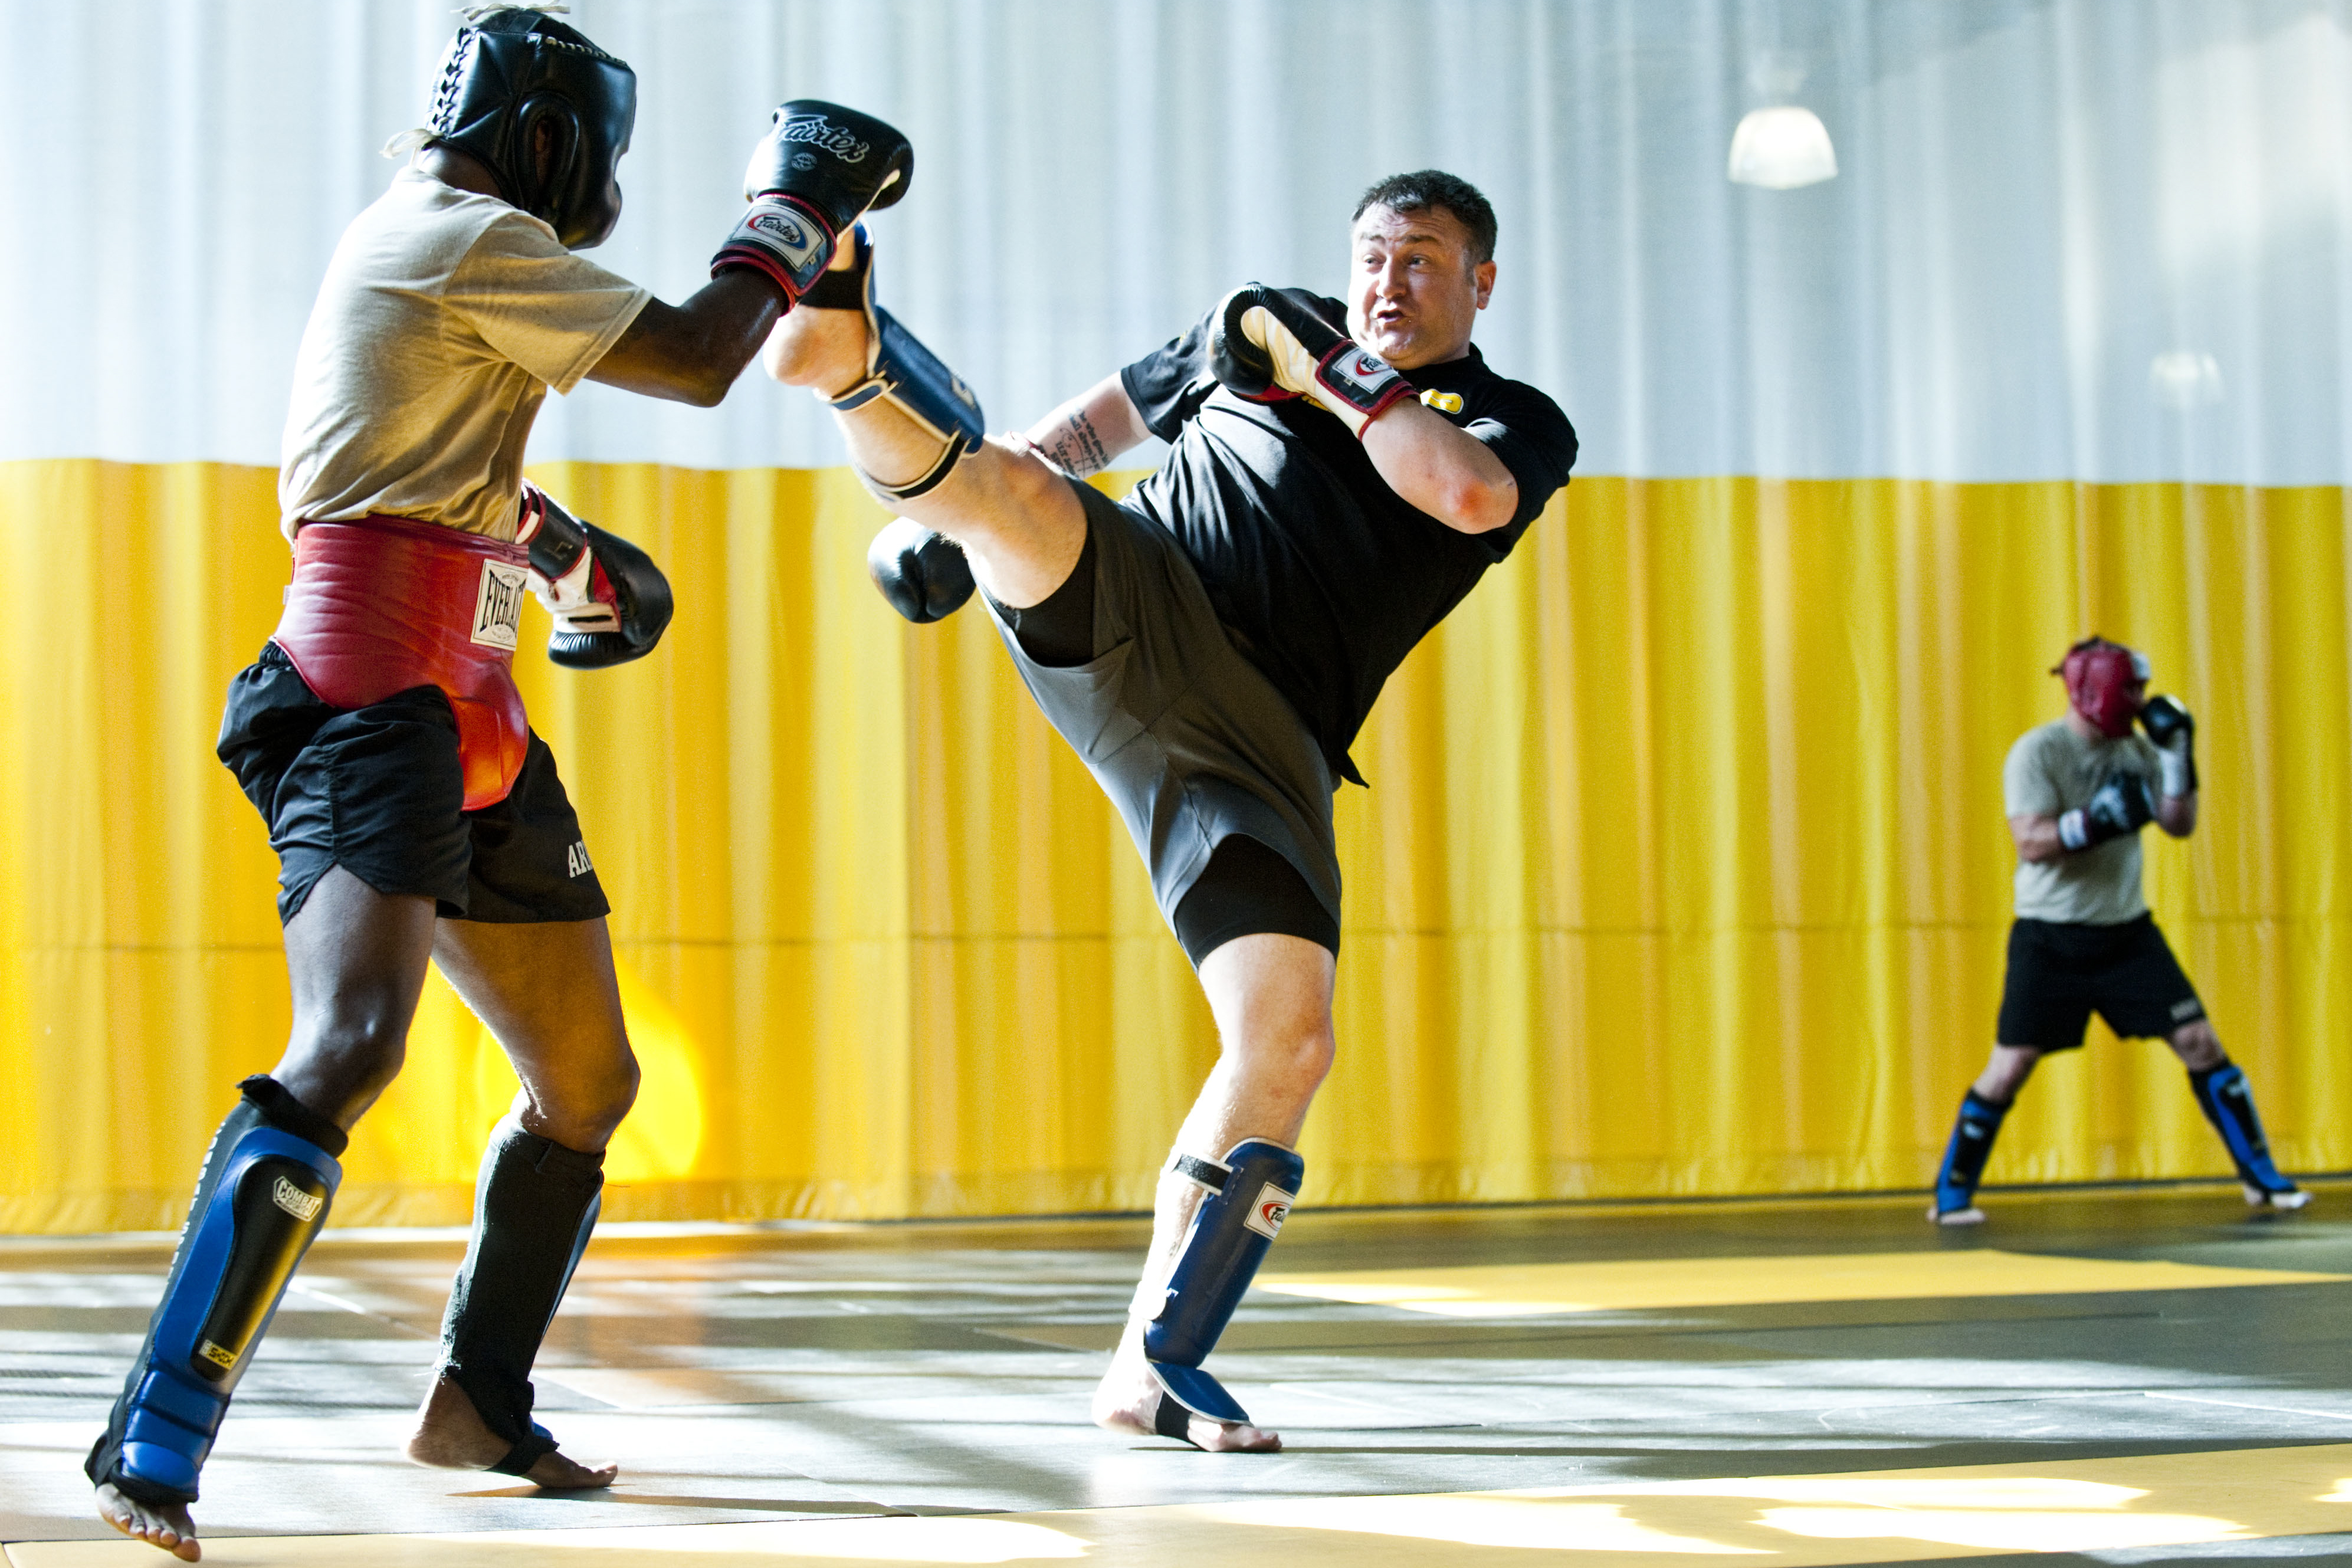 Sgt. 1st Class Kevin Rice, a master trainer at the U.S. Army Combatives School, drives back his partner with a high kick during a sparring session.